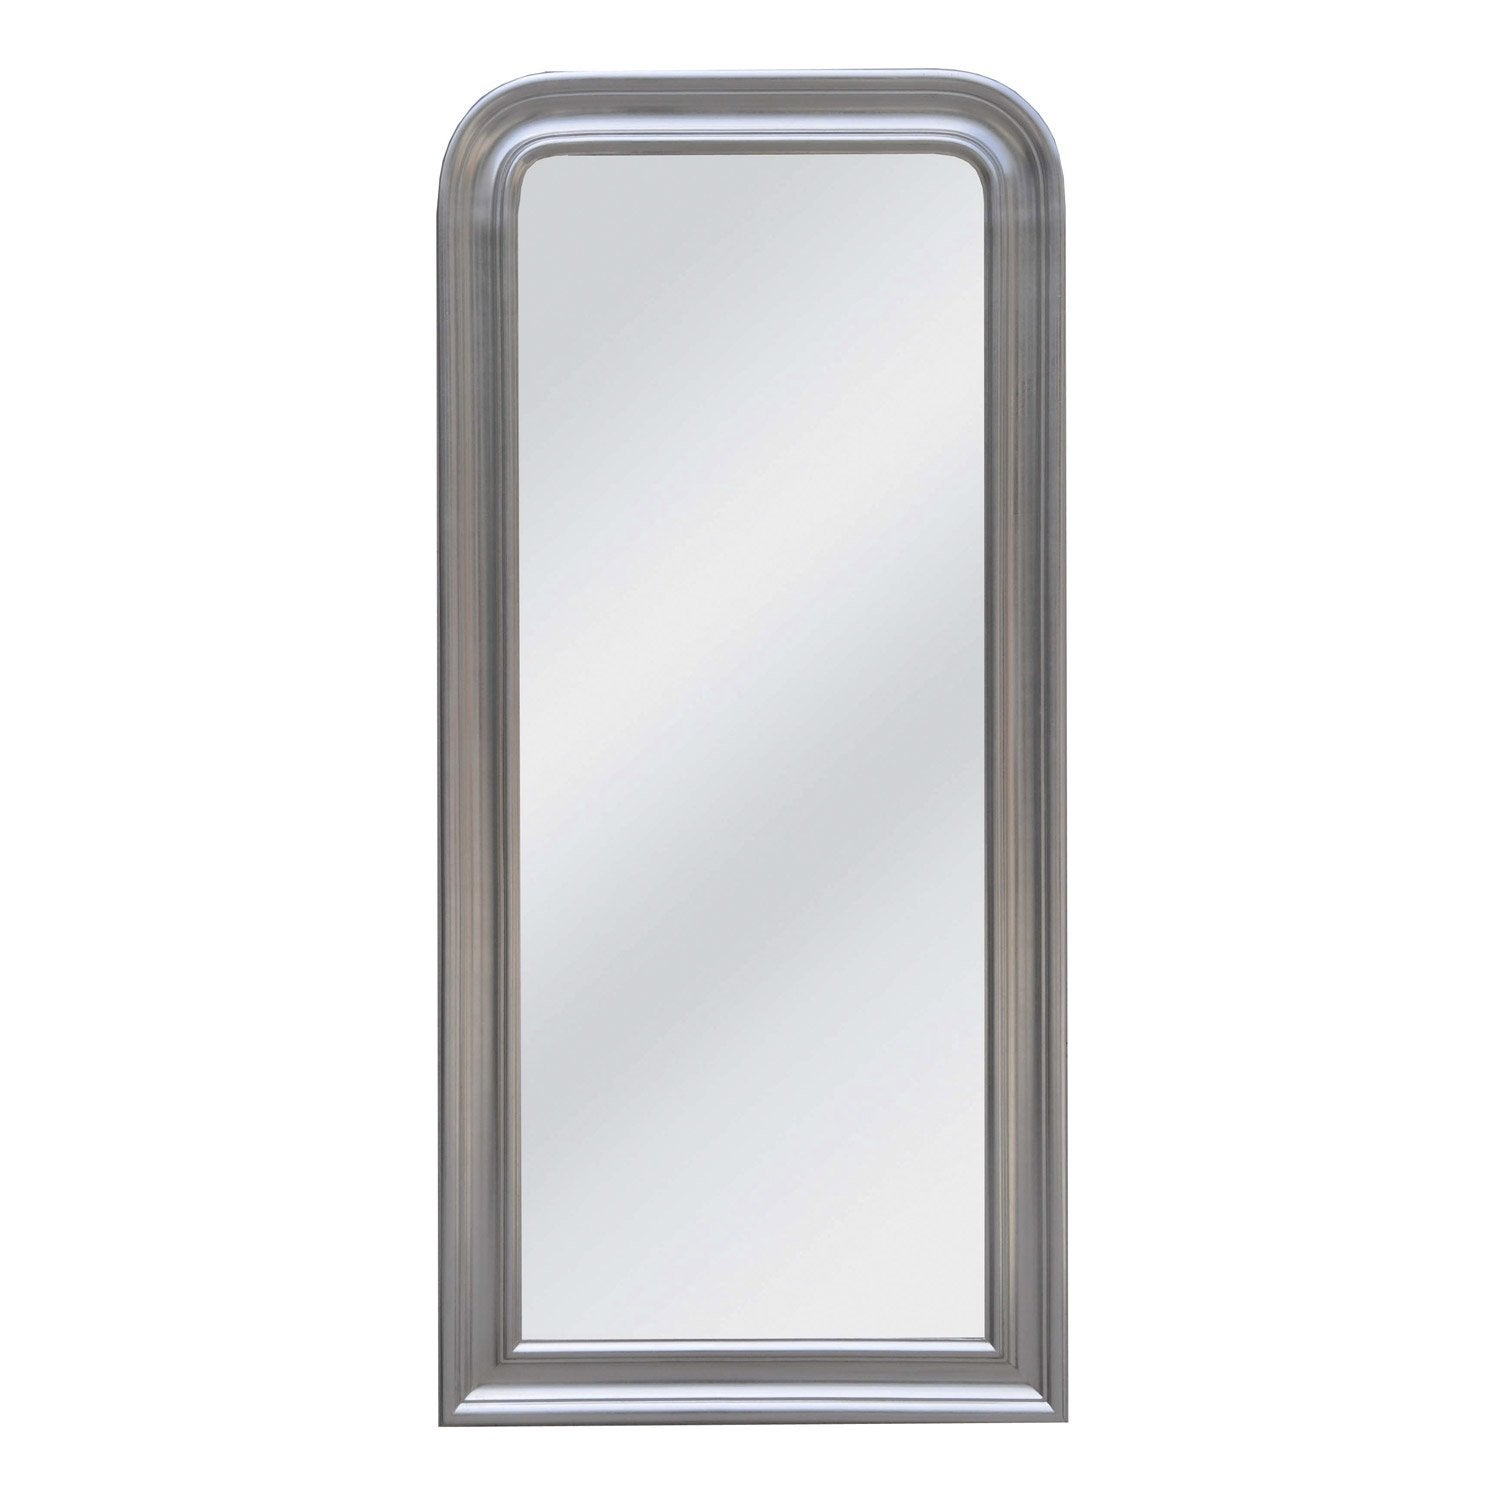 Miroir daventry rectangle argent 70x150 cm leroy merlin for Miroir decoratif leroy merlin